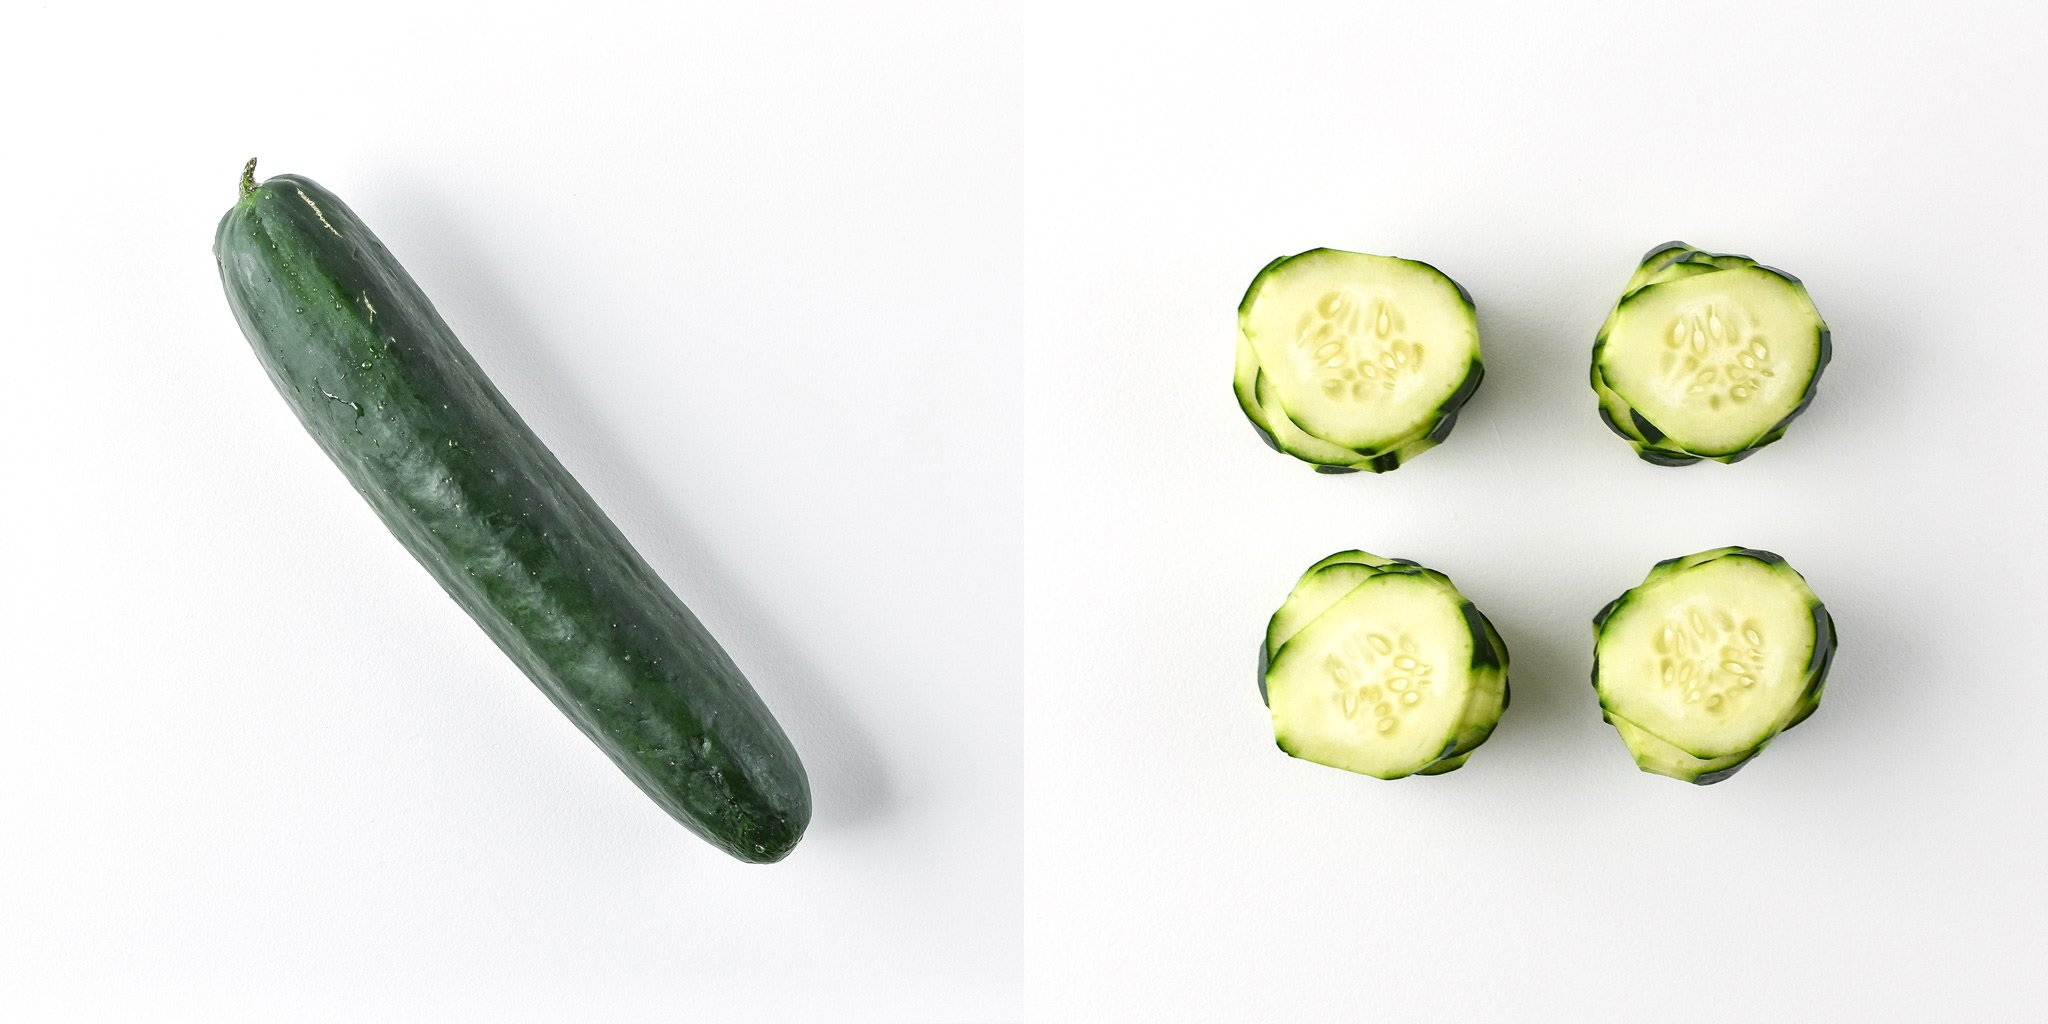 Cucumbers before and after preparing and portioning.